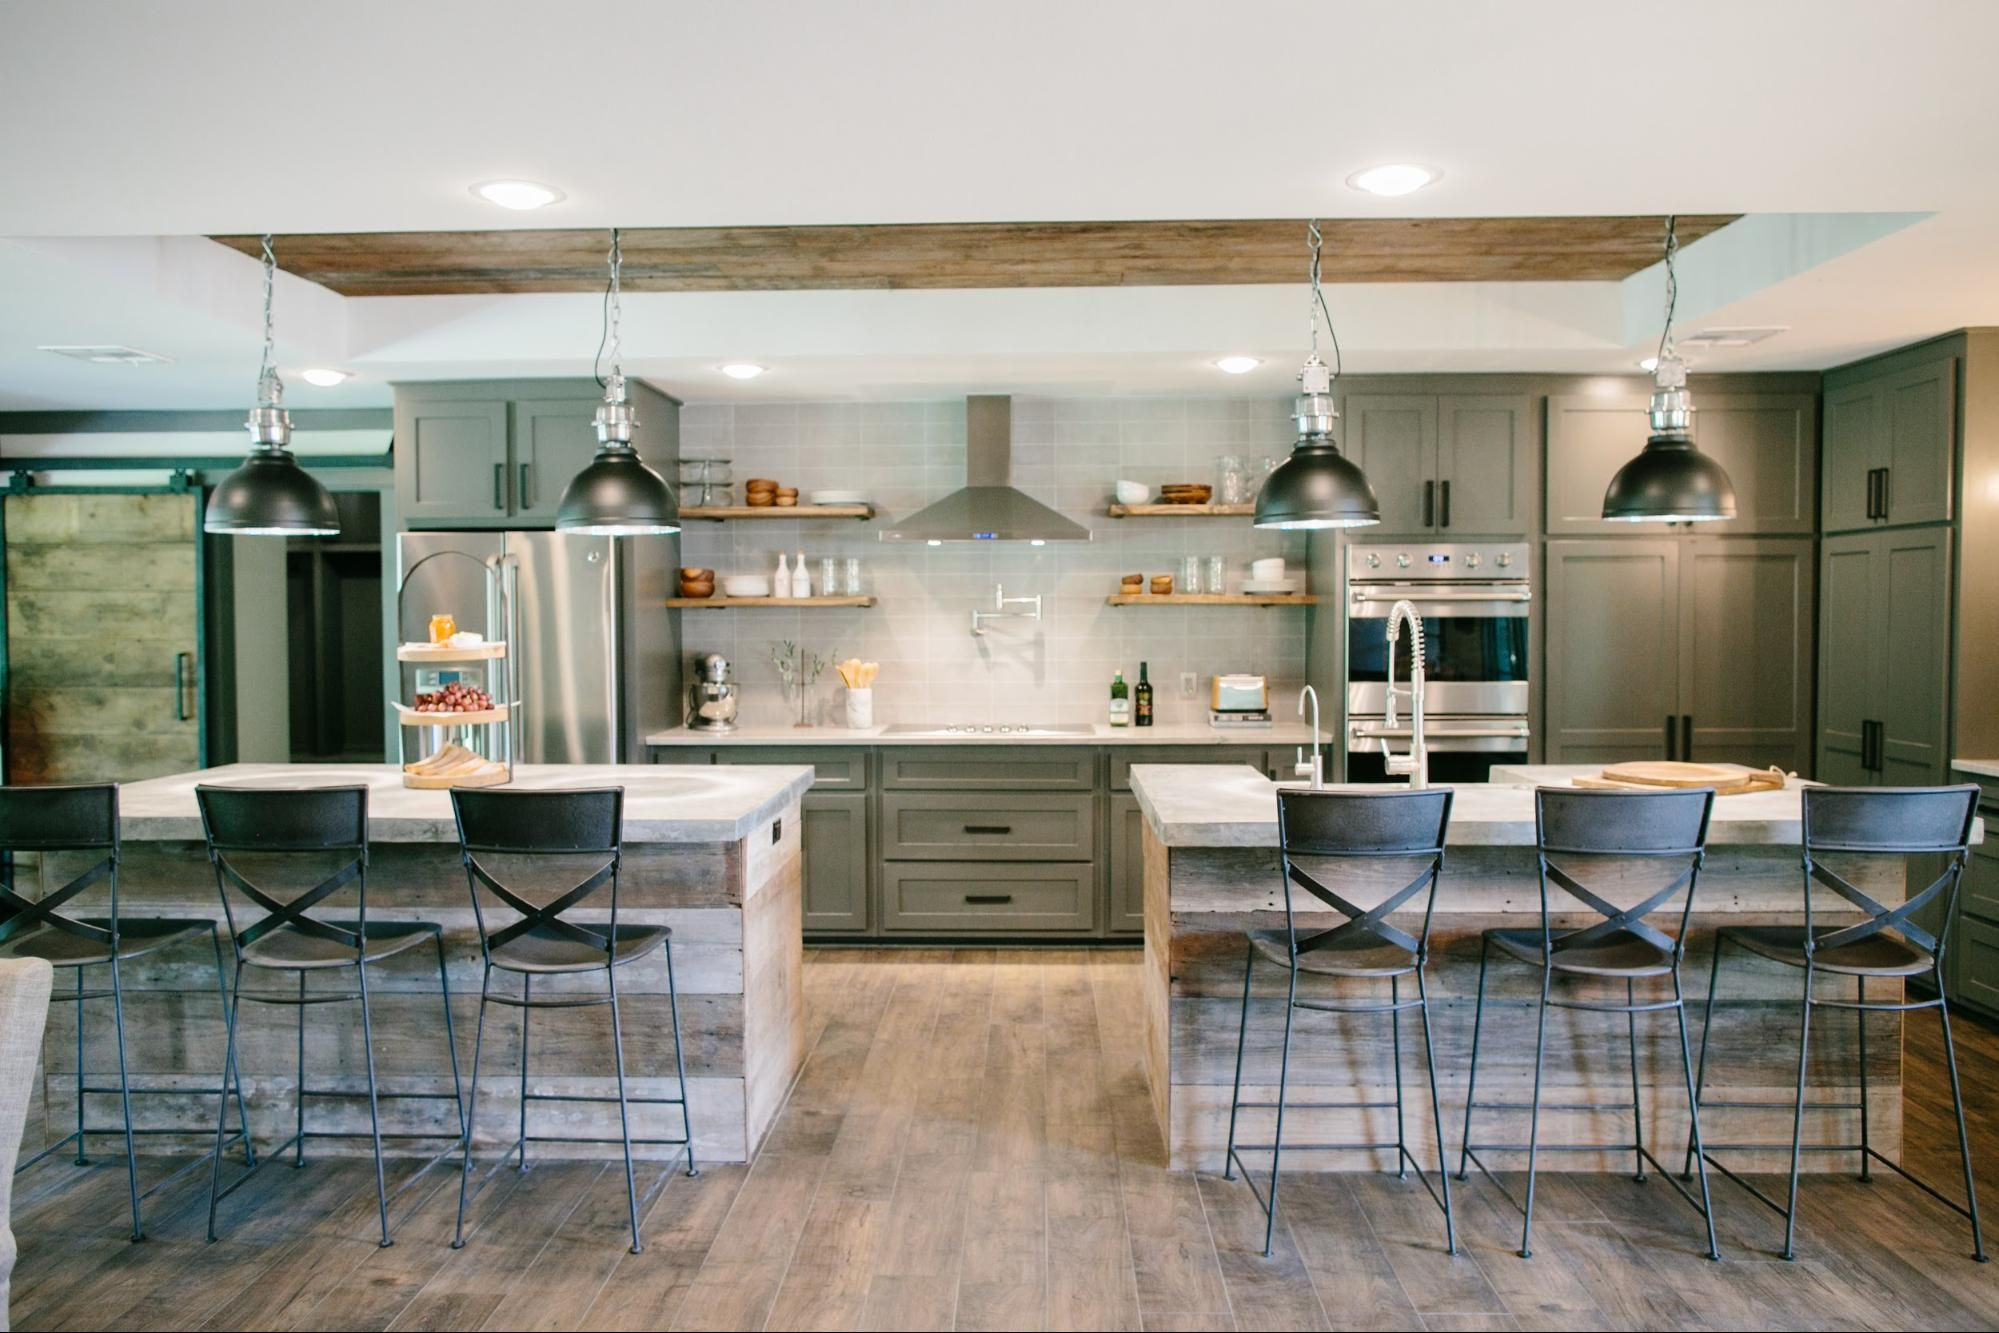 Fixer Upper | Modern rustic kitchens, Joanna gaines and Rustic kitchen